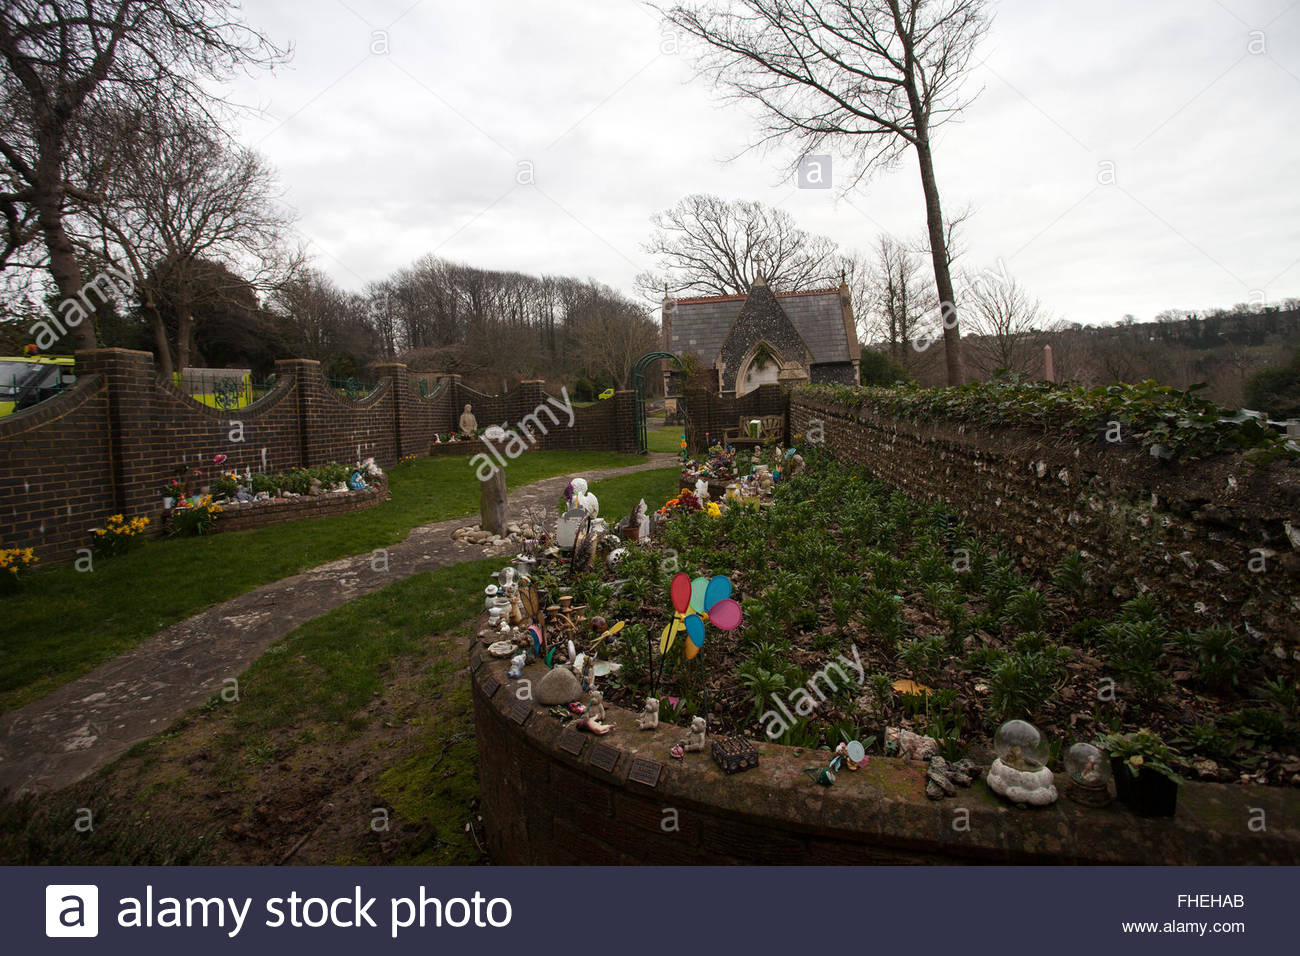 Garden in Memory of All Our Babies, Infants and Children, Bristol ...